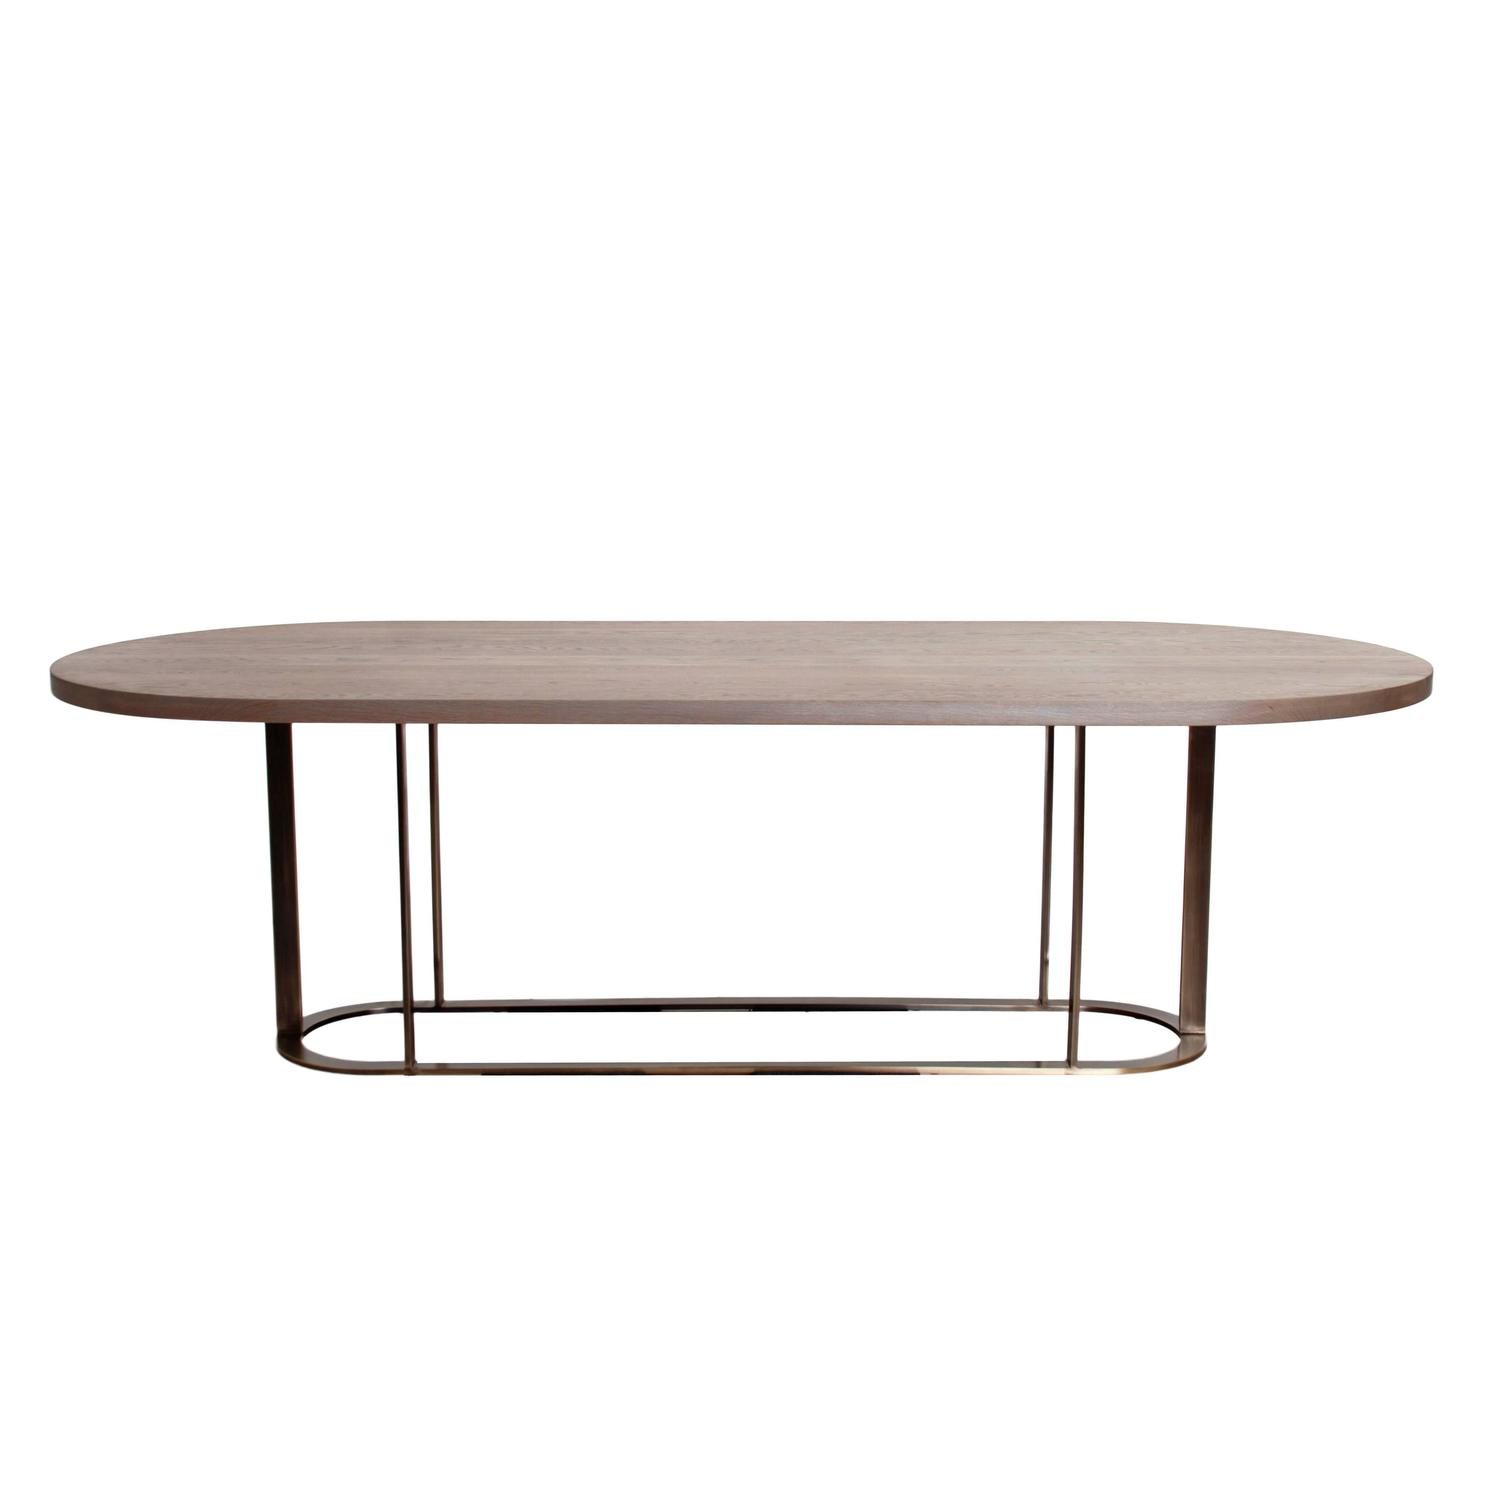 Coyler Dining Table with Solid Bronze Base by Thomas Hayes  : 2z from www.1stdibs.com size 1500 x 1500 jpeg 35kB